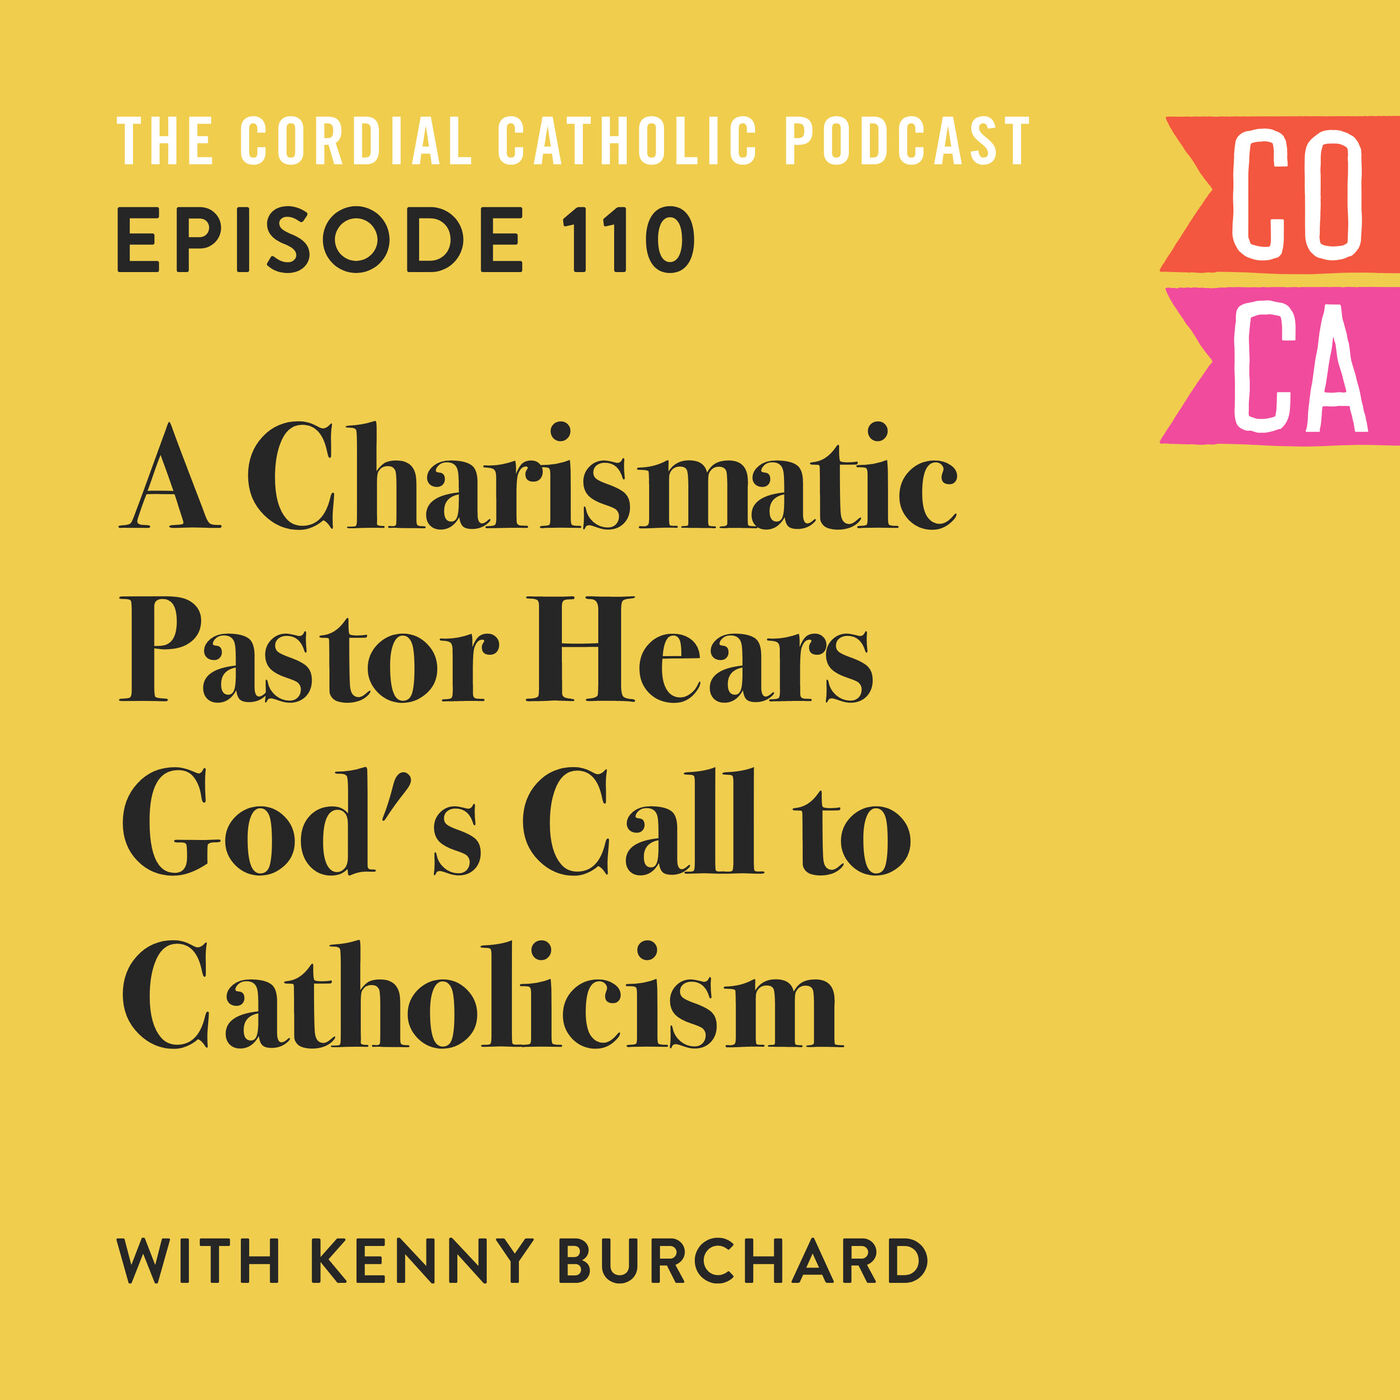 110: A Charismatic Pastor Hears God's Call to Catholicism (w/ Kenny Burchard)